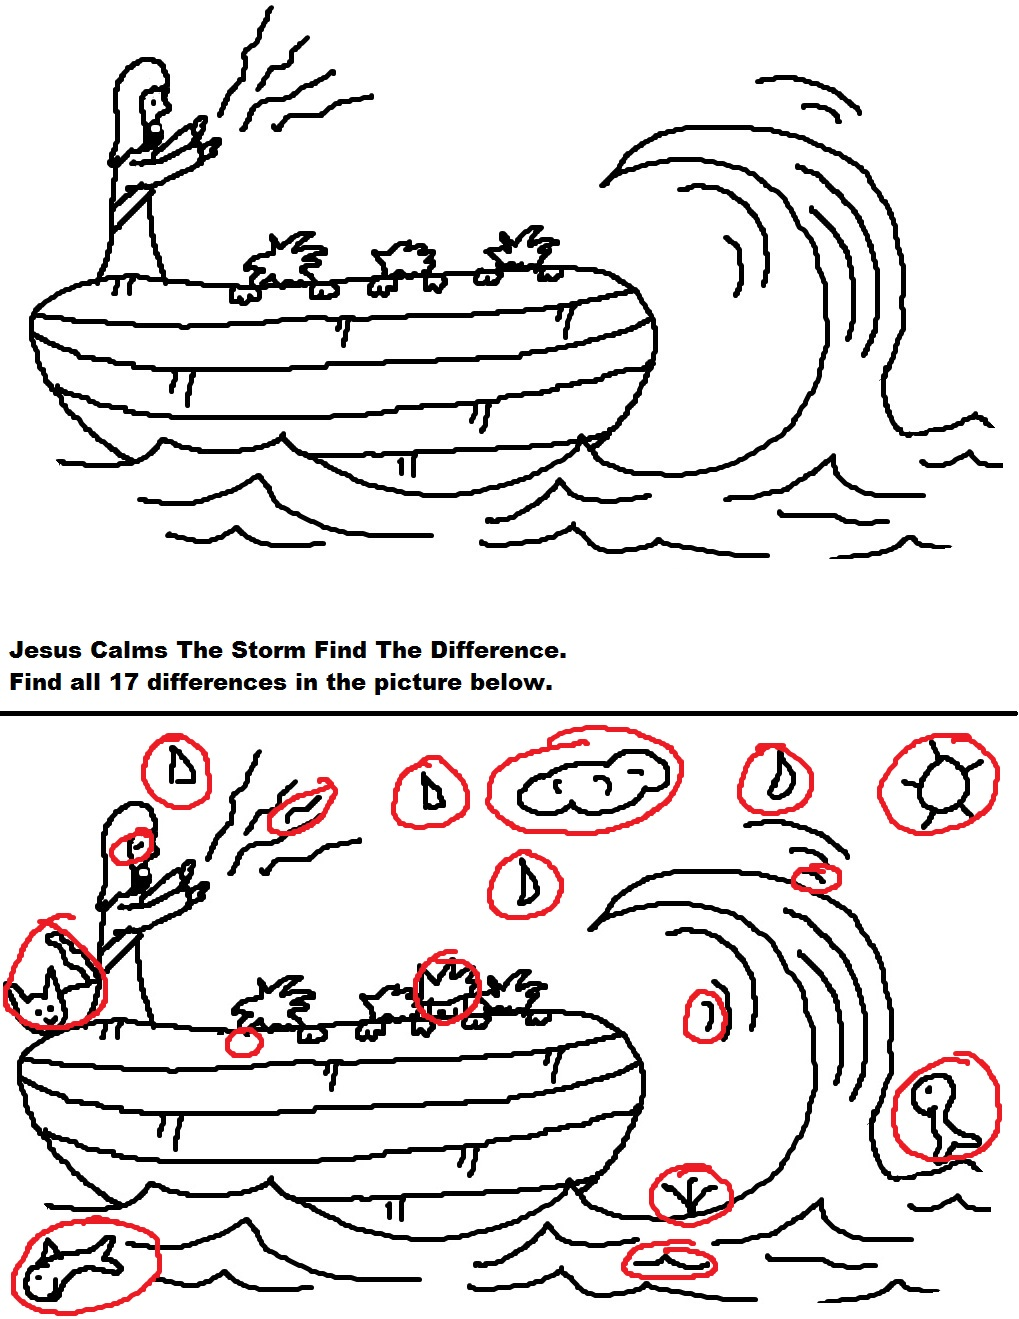 Jesus Calms The Storm Find Difference Answer Key